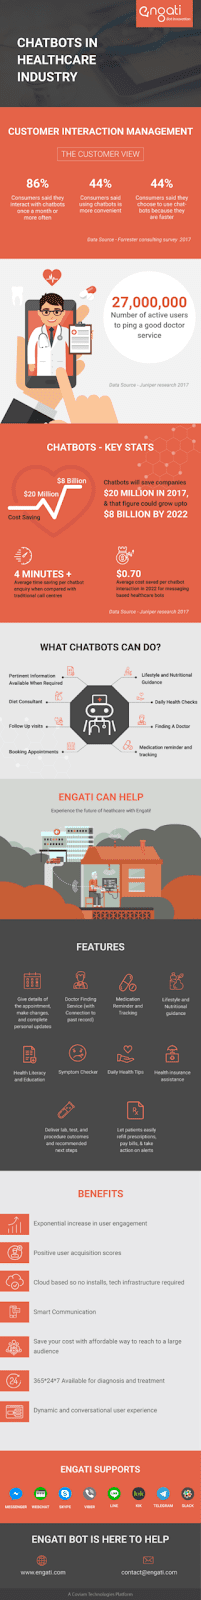 chatbots in healthcare industry (infographics)